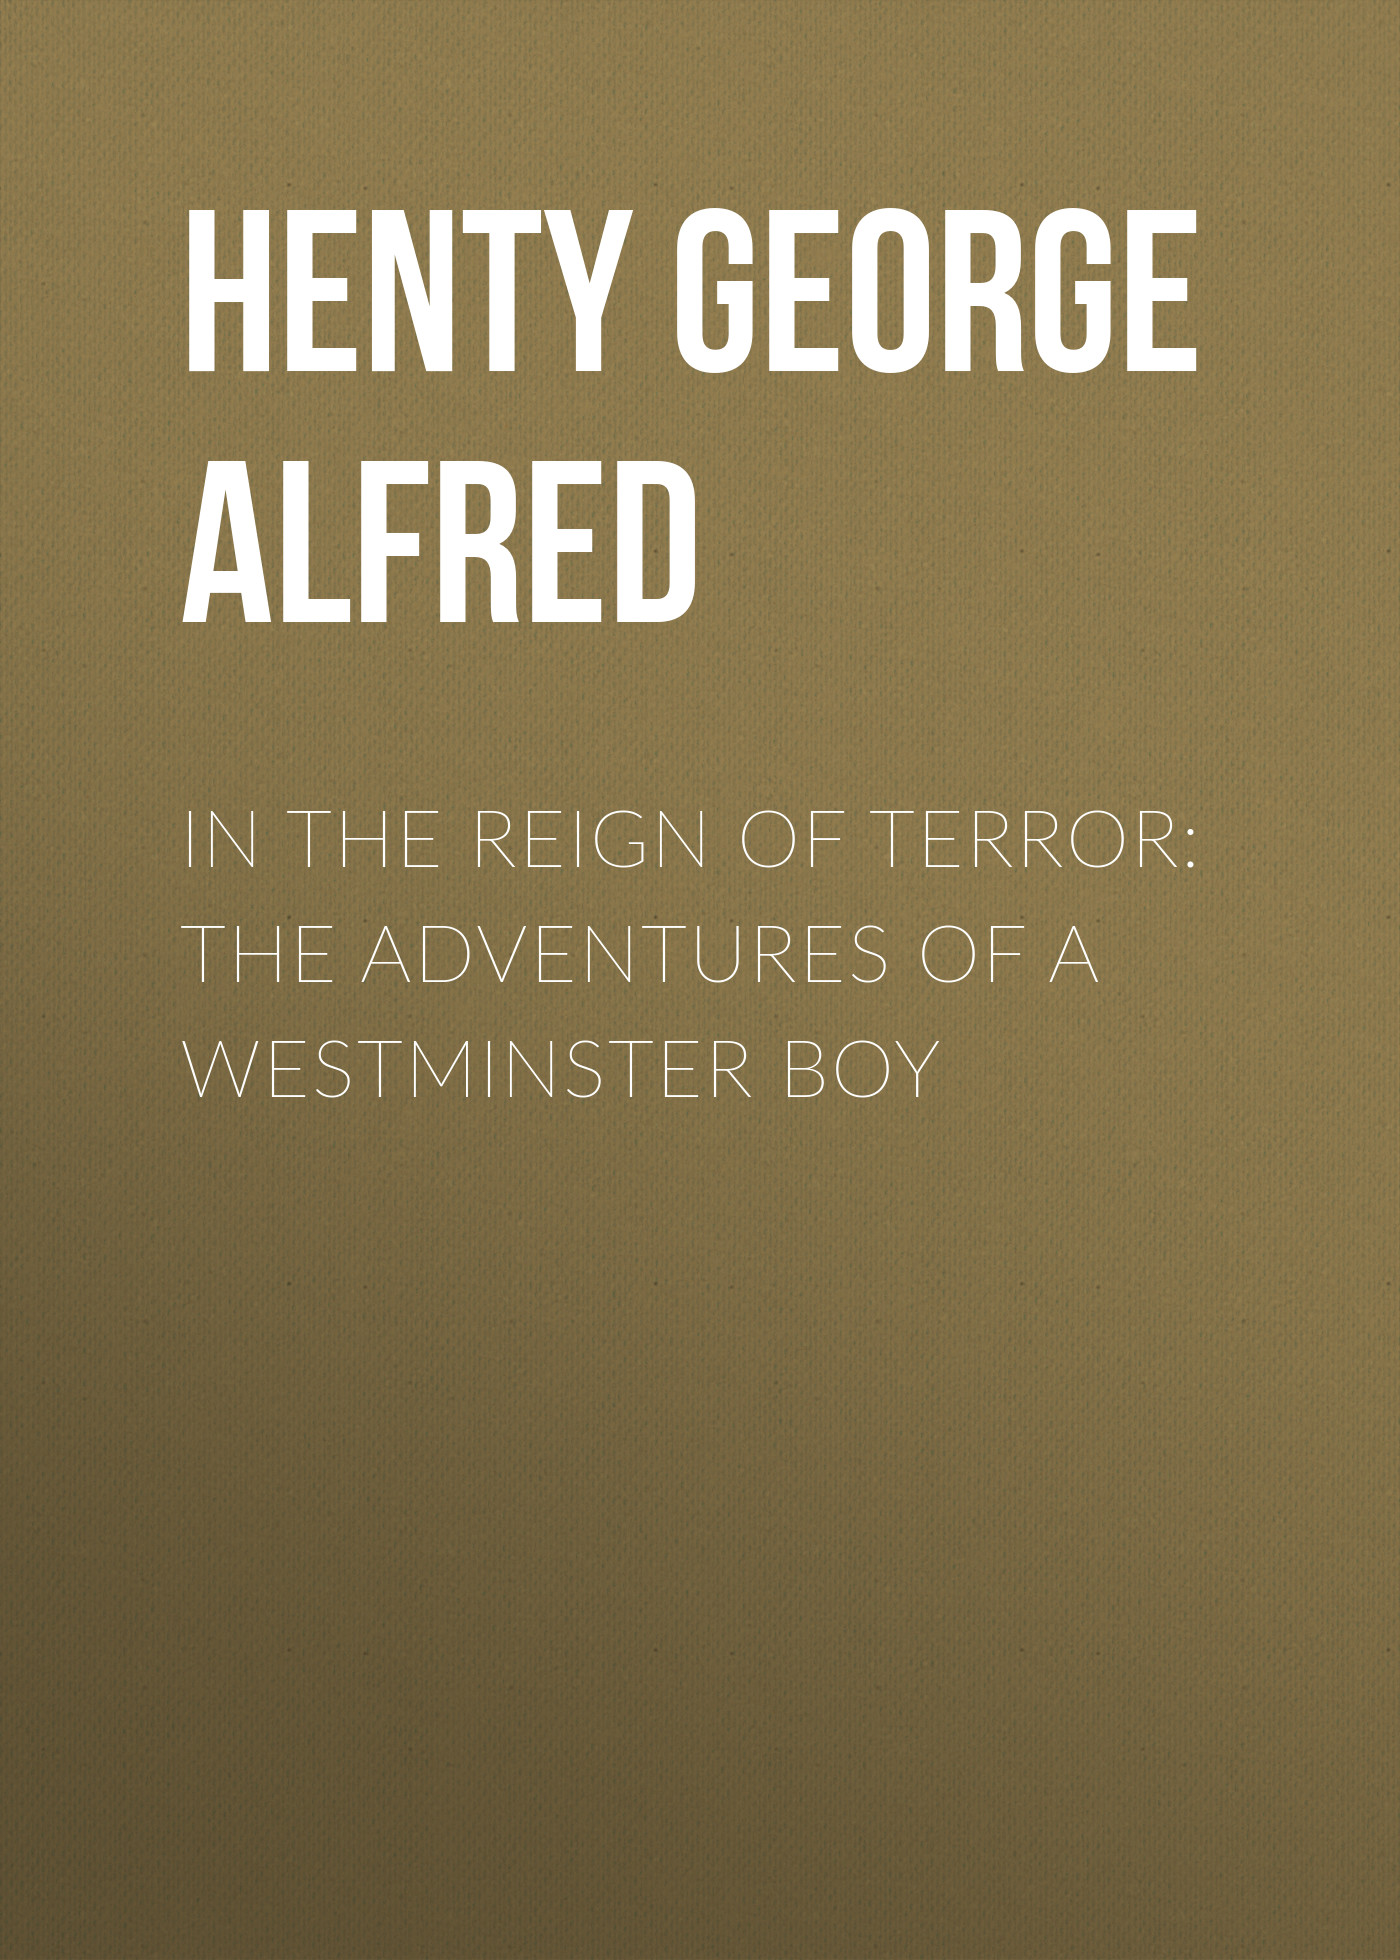 лучшая цена Henty George Alfred In the Reign of Terror: The Adventures of a Westminster Boy